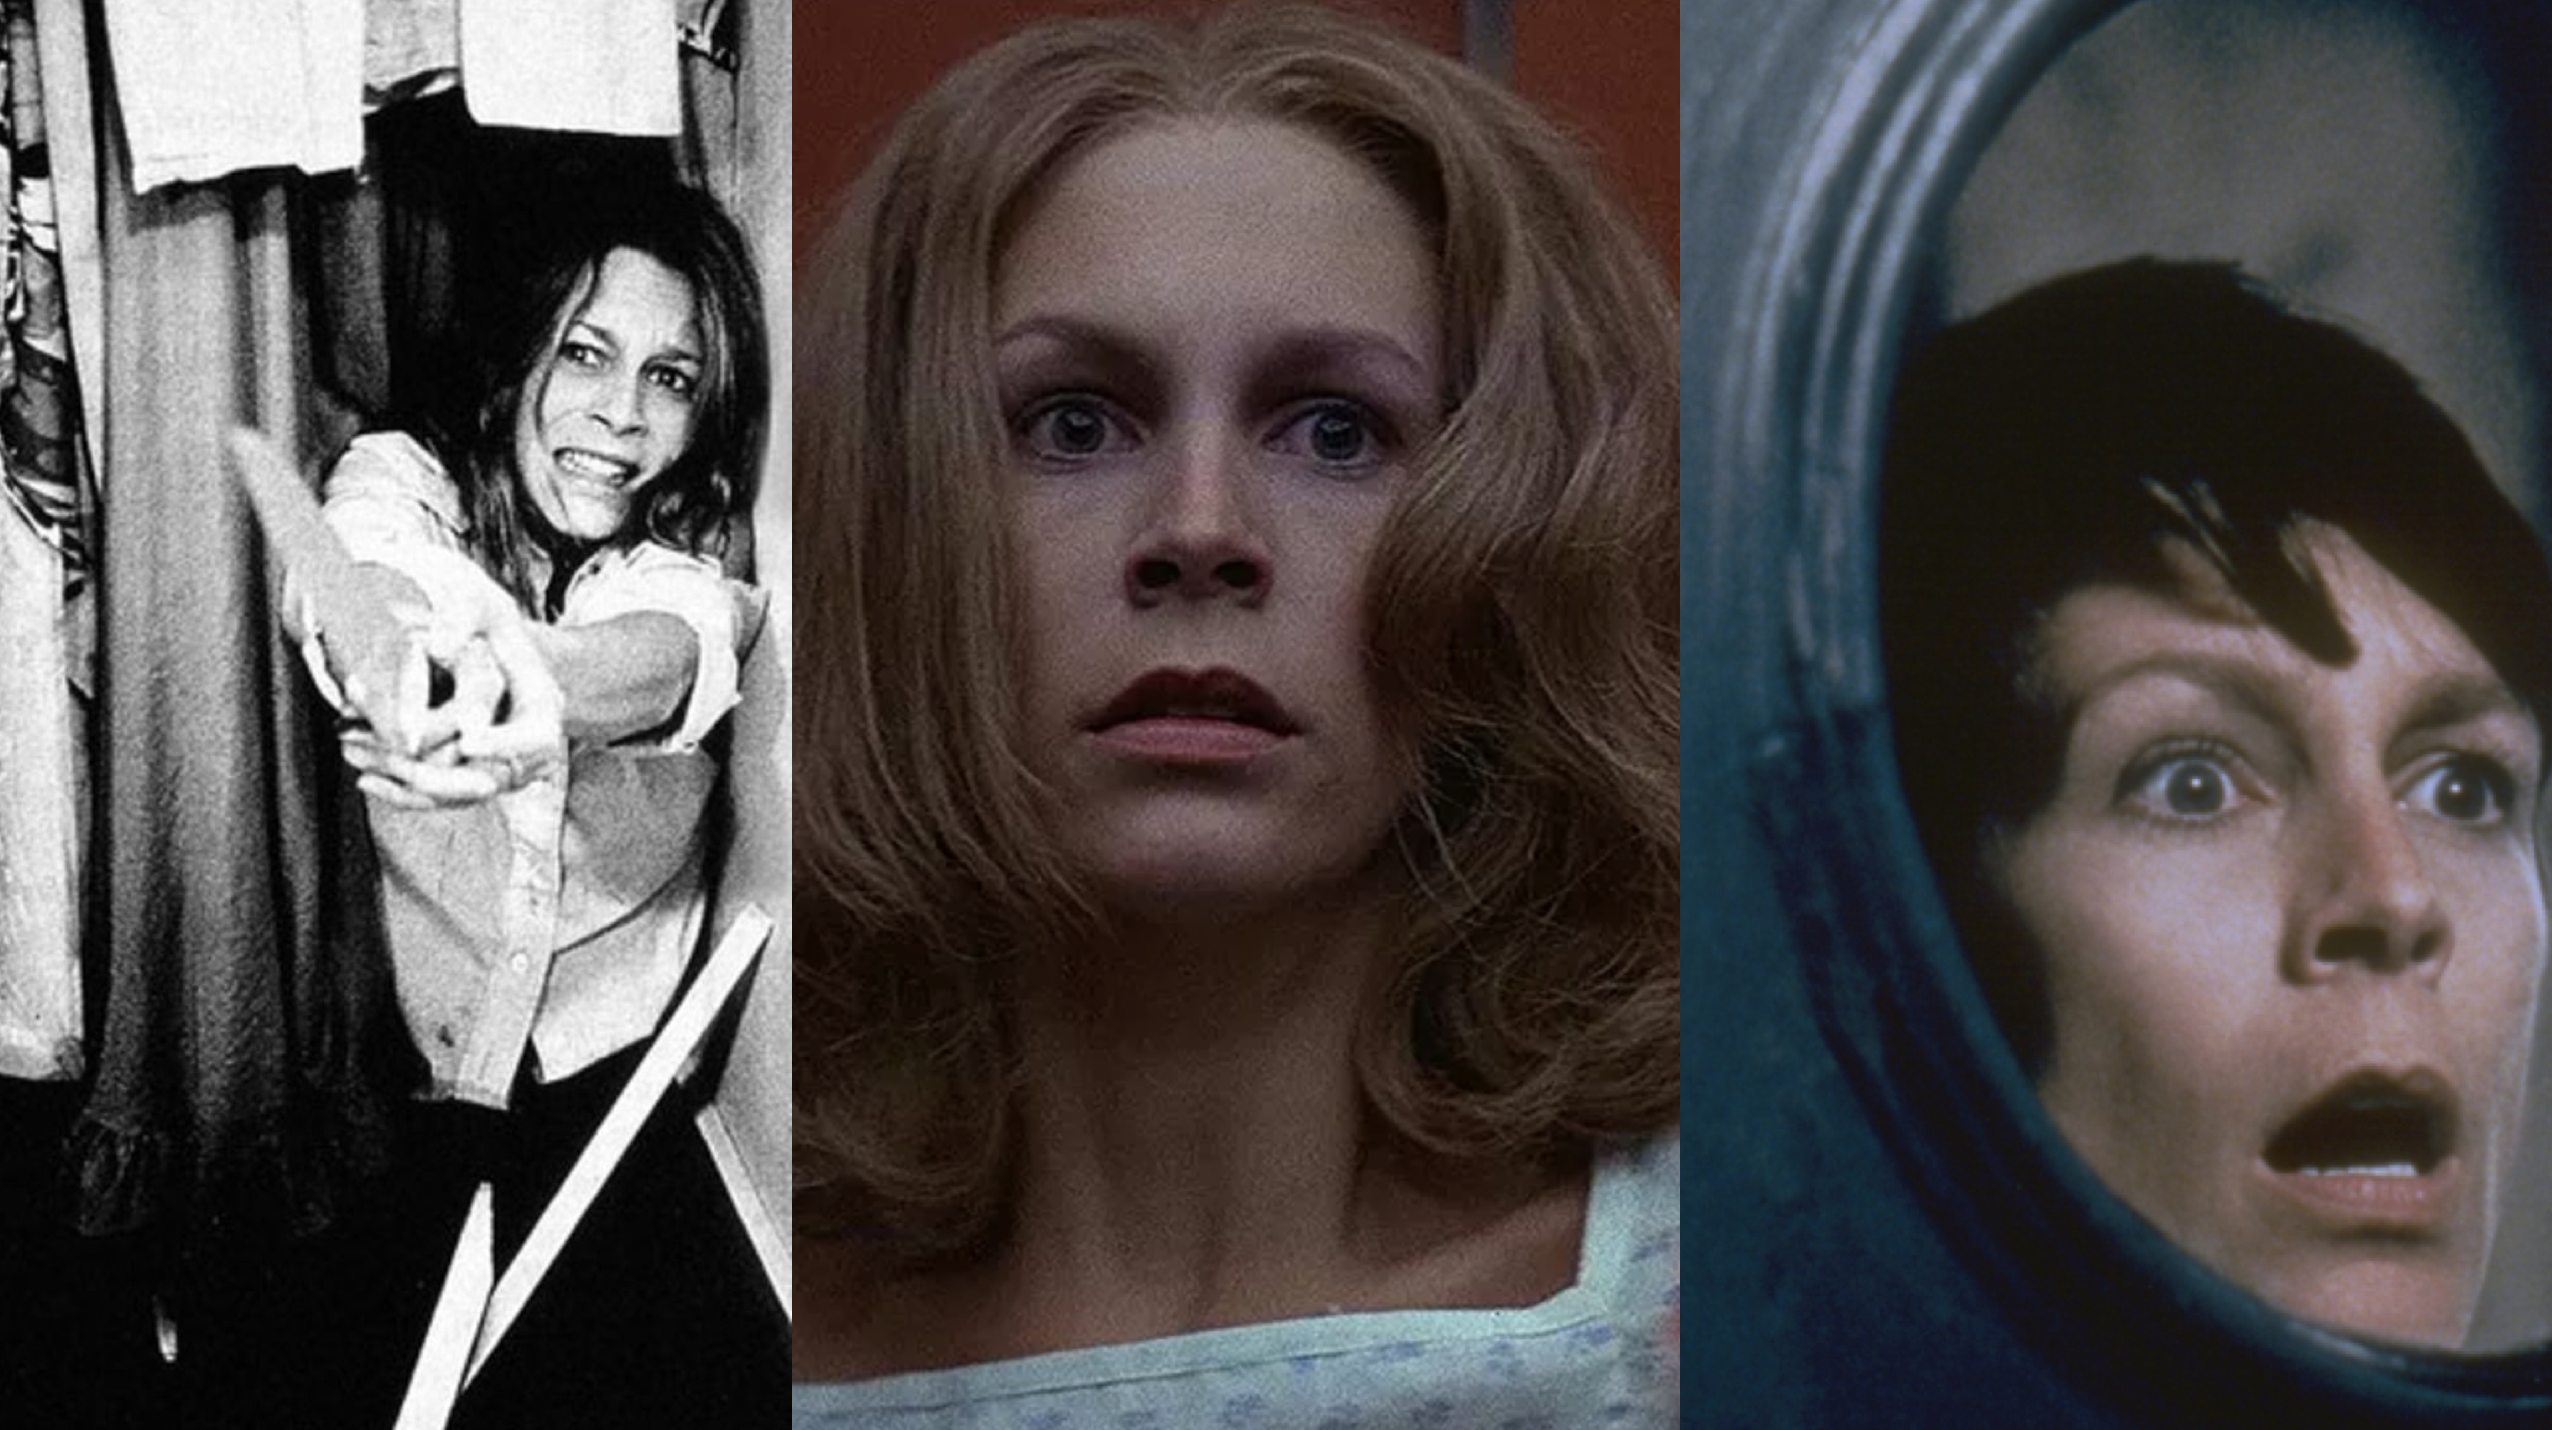 Yes, 'Halloween' is, in fact, a trilogy